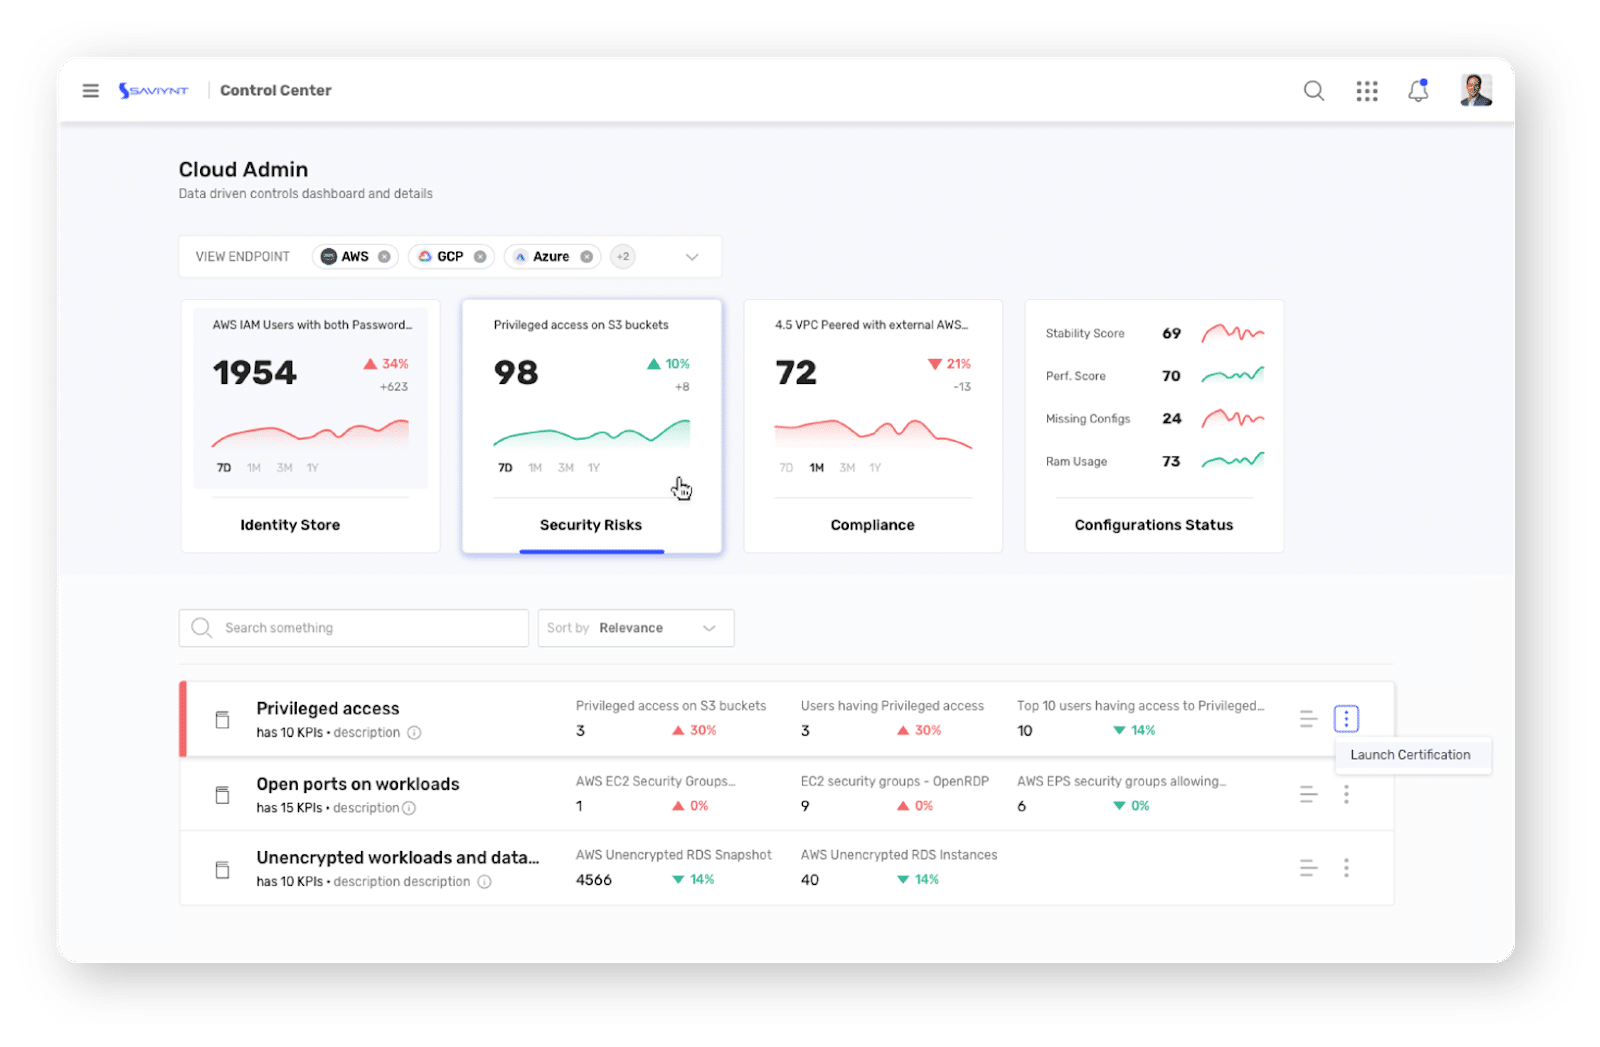 The Cloud Administration Dashboard offers a comprehensive set of KPIs drive platform analytics that  are made available in a user-friendly dashboard